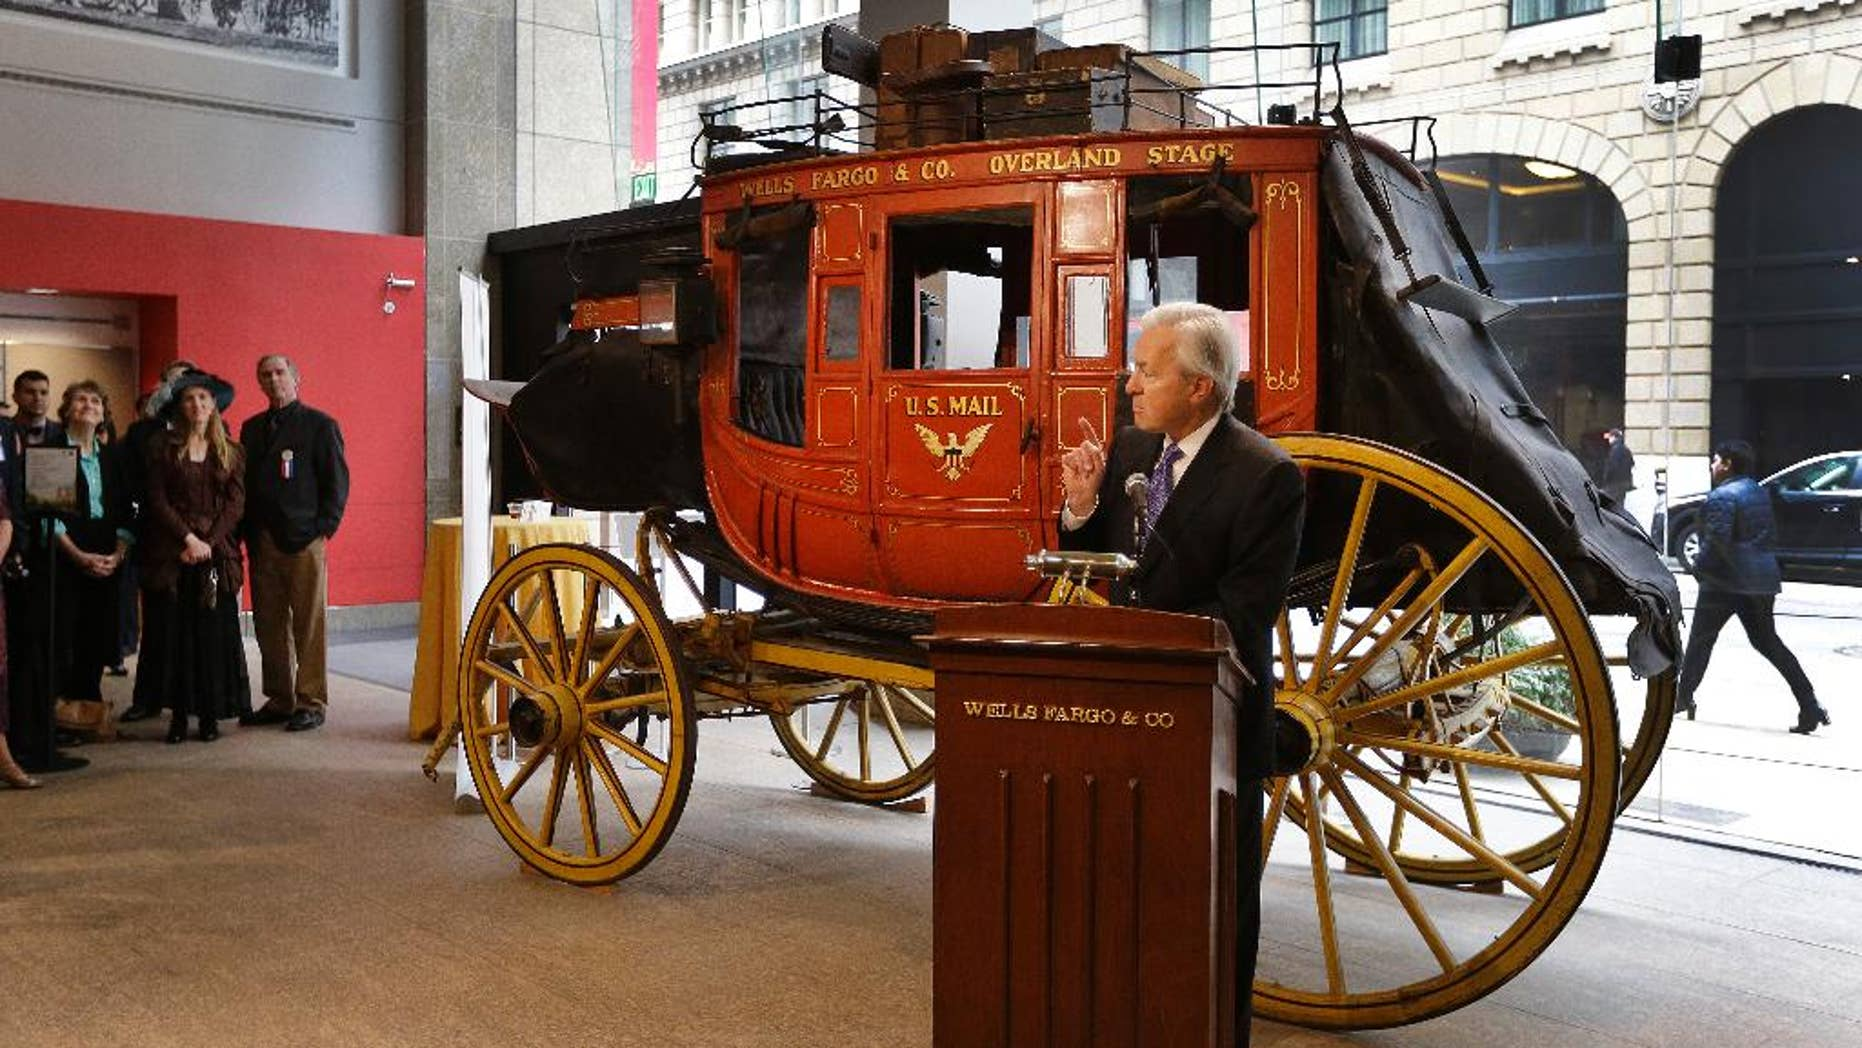 Wells Fargo CEO John Stumpf gestures while speaking during a media conference Thursday, Feb. 19, 2015, in San Francisco.  The popular history museum in the heart of San Francisco's financial district is reopening weeks after thieves smashed a stolen vehicle through its front door and made off with historic gold nuggets on display.  (AP Photo/Ben Margot)